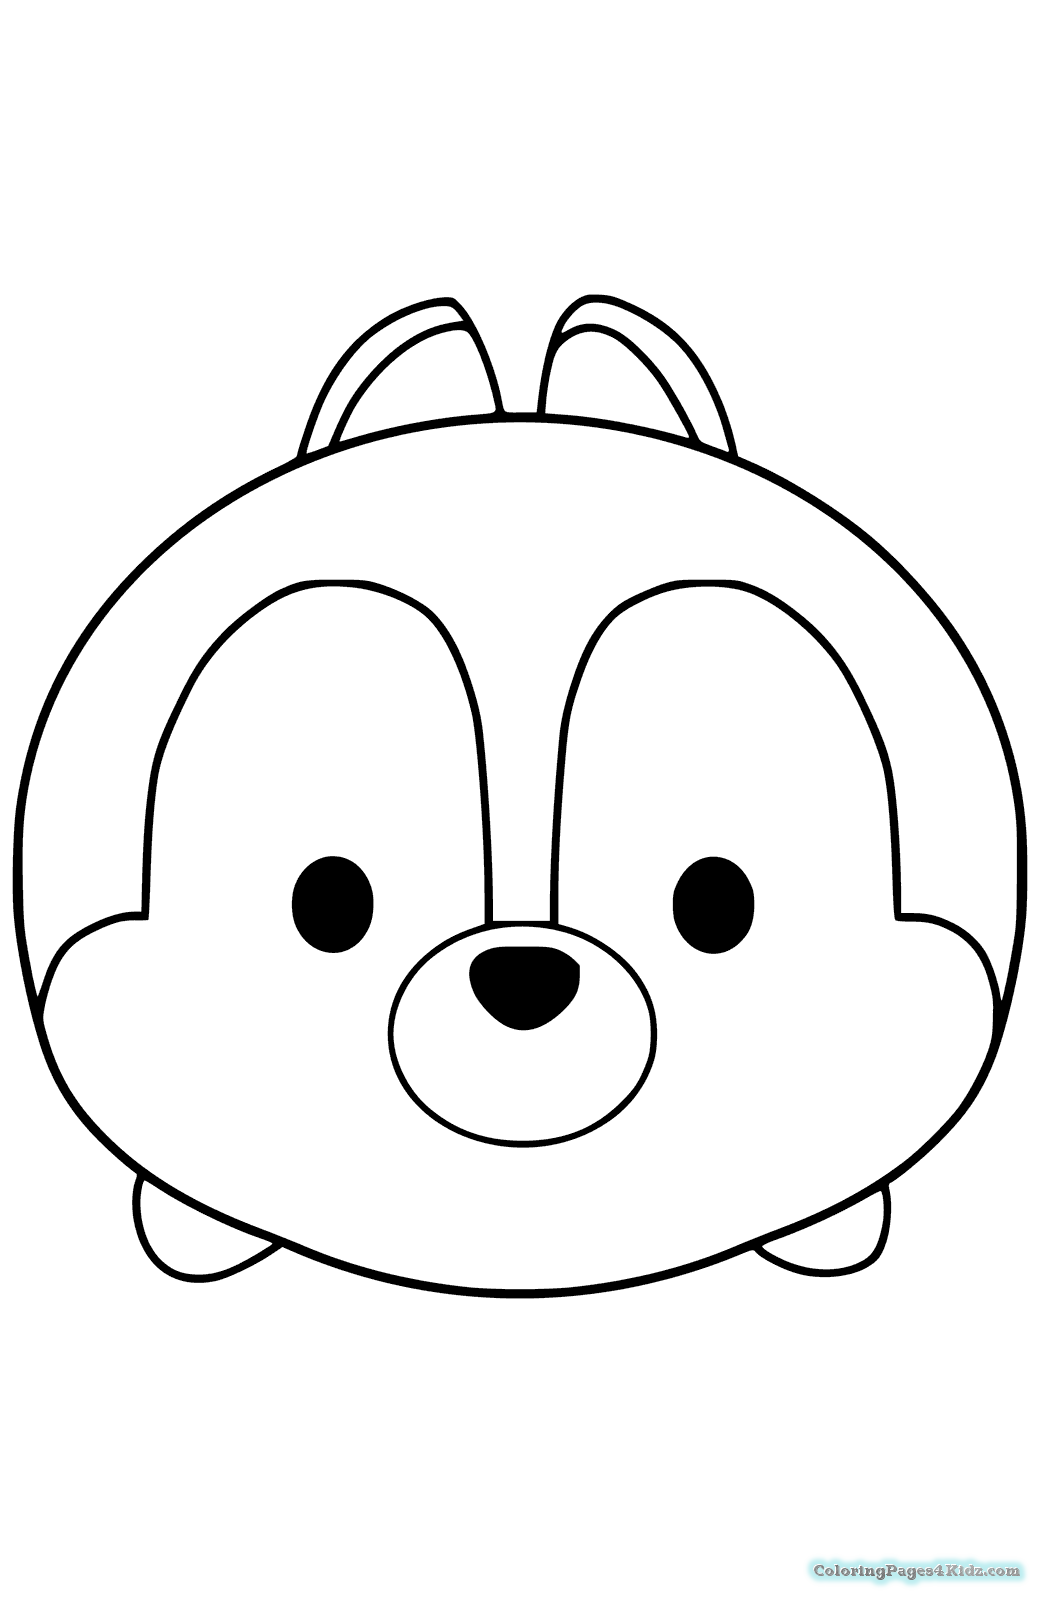 Disney Tsum Tsum Coloring Pages at GetDrawings.com | Free for ...